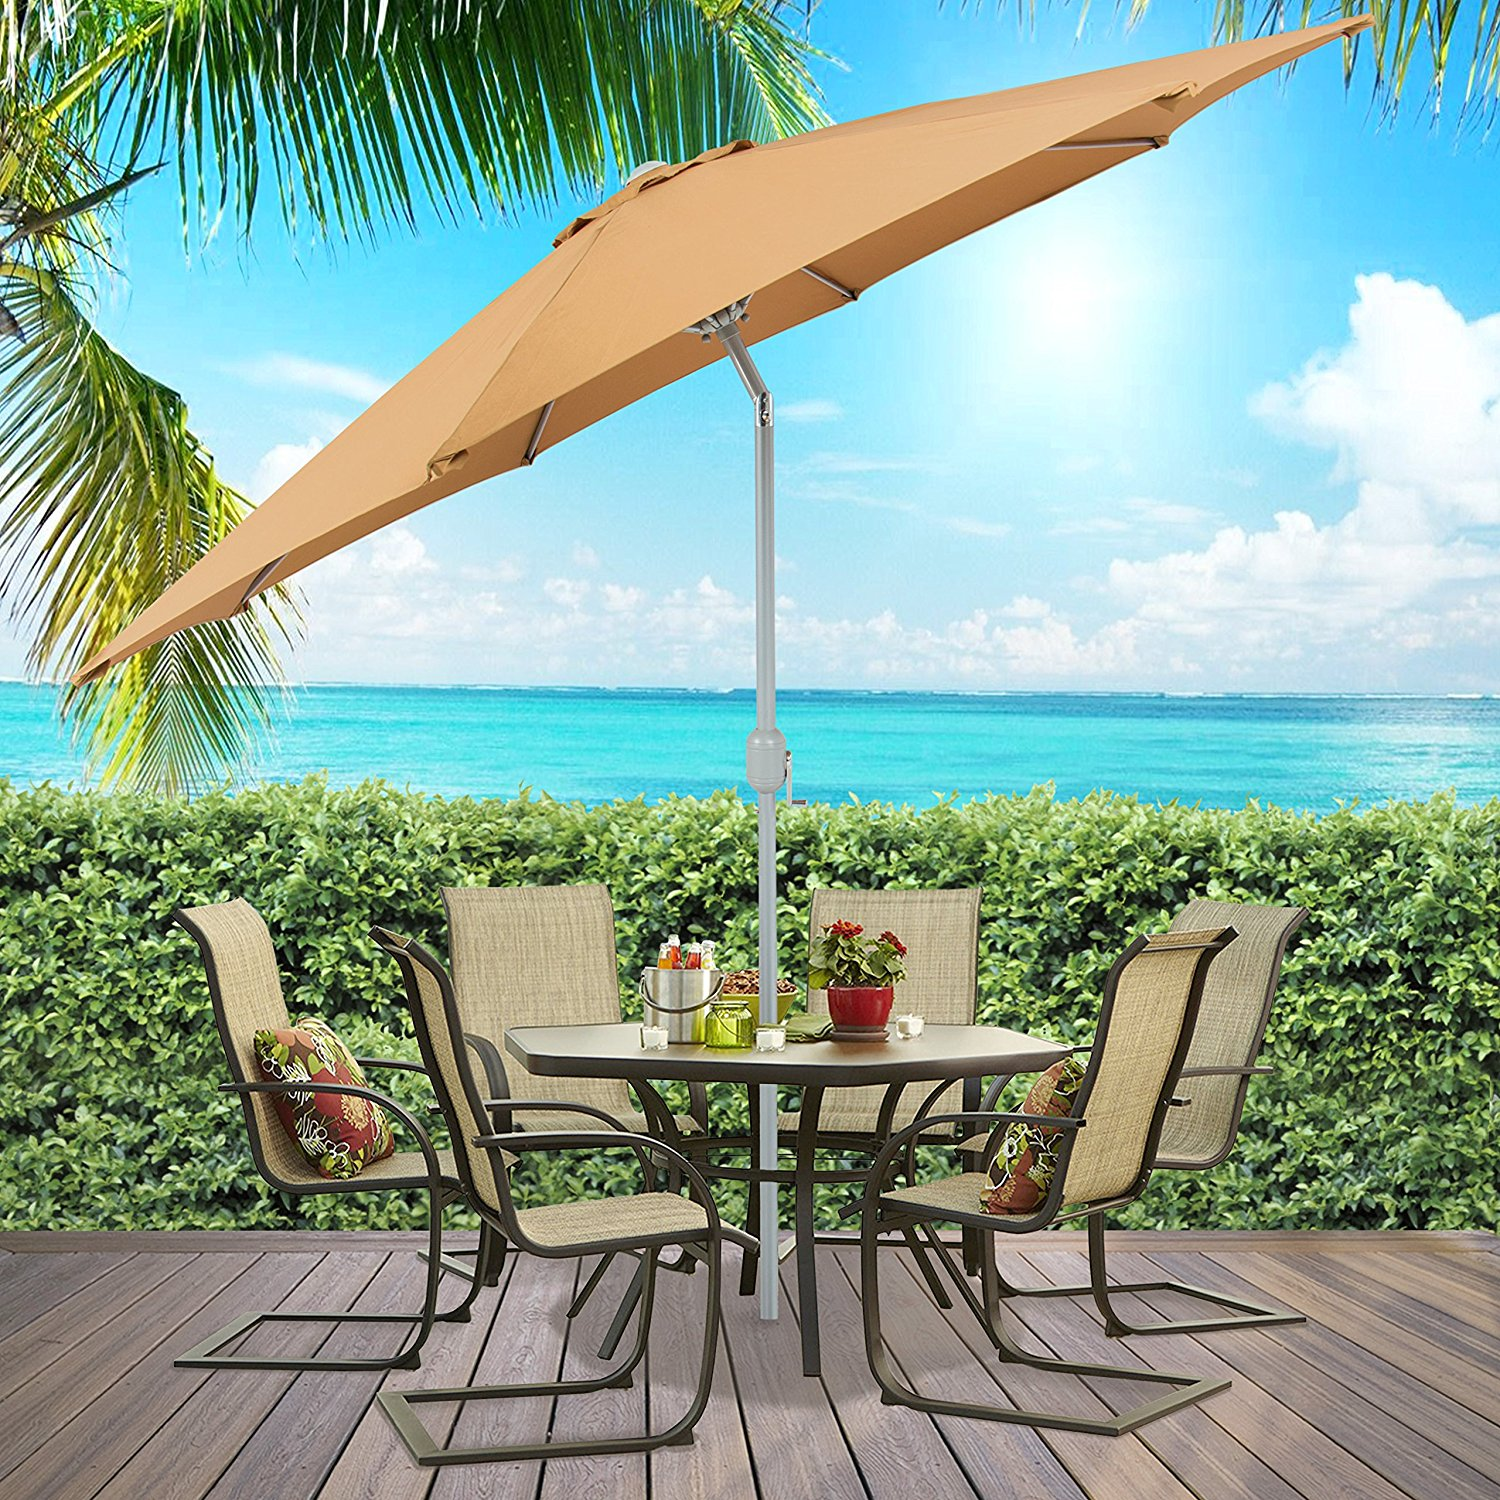 wind spun umbrellas ft offset resistantet coral canopy umbrella push windproof blue cantilever coast commercial button poly royal tilt with resistant patio rectangular